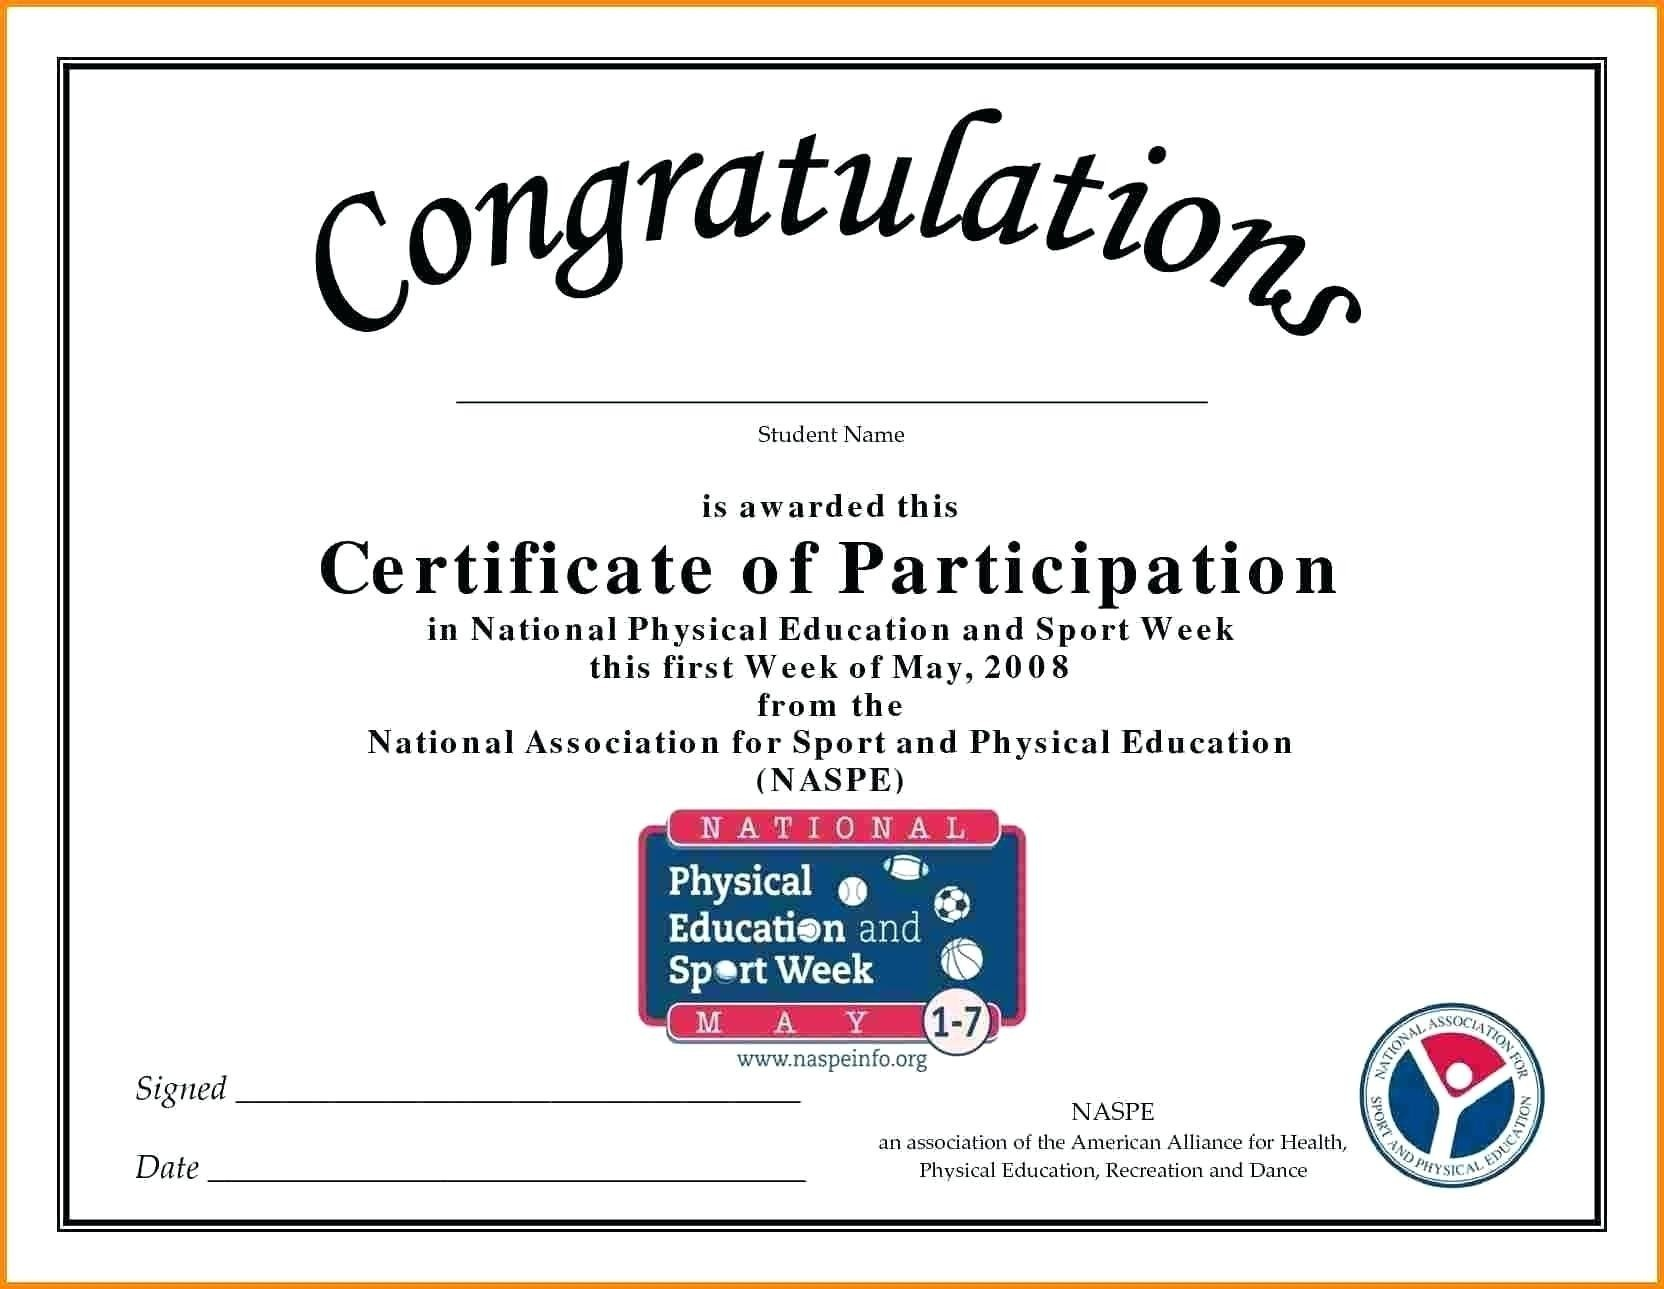 Athletic Certificate Template Work Completion Format Doc New Sample - Sports Certificate Templates Free Printable